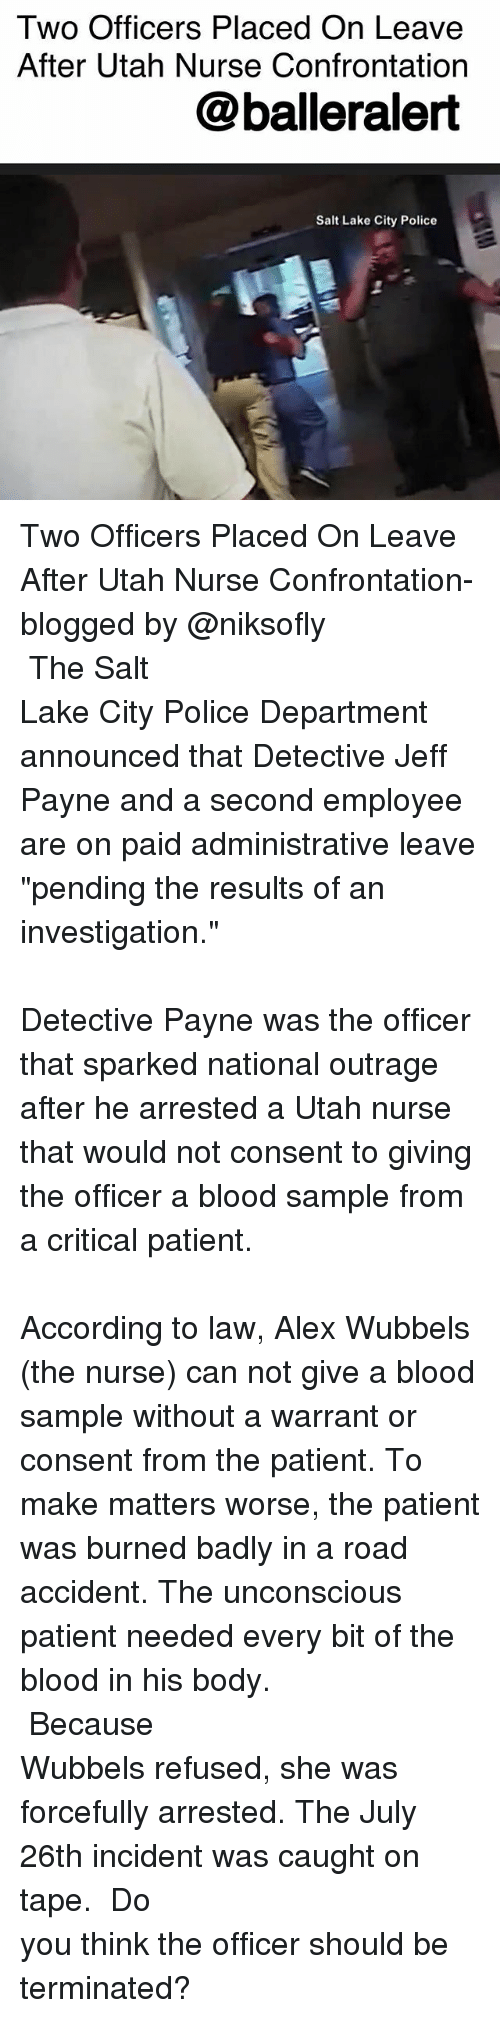 "Salting: Two Officers Placed On Leave  After Utah Nurse Confrontation  @balleralert  Salt Lake City Police Two Officers Placed On Leave After Utah Nurse Confrontation- blogged by @niksofly ⠀⠀⠀⠀⠀⠀⠀⠀⠀⠀⠀⠀⠀⠀⠀⠀⠀⠀⠀⠀⠀⠀⠀⠀⠀⠀⠀⠀⠀⠀⠀⠀⠀⠀⠀⠀ The Salt Lake City Police Department announced that Detective Jeff Payne and a second employee are on paid administrative leave ""pending the results of an investigation."" ⠀⠀⠀⠀⠀⠀⠀⠀⠀⠀⠀⠀⠀⠀⠀⠀⠀⠀⠀⠀⠀⠀⠀⠀⠀⠀⠀⠀⠀⠀⠀⠀⠀⠀⠀⠀ Detective Payne was the officer that sparked national outrage after he arrested a Utah nurse that would not consent to giving the officer a blood sample from a critical patient. ⠀⠀⠀⠀⠀⠀⠀⠀⠀⠀⠀⠀⠀⠀⠀⠀⠀⠀⠀⠀⠀⠀⠀⠀⠀⠀⠀⠀⠀⠀⠀⠀⠀⠀⠀⠀ According to law, Alex Wubbels (the nurse) can not give a blood sample without a warrant or consent from the patient. To make matters worse, the patient was burned badly in a road accident. The unconscious patient needed every bit of the blood in his body. ⠀⠀⠀⠀⠀⠀⠀⠀⠀⠀⠀⠀⠀⠀⠀⠀⠀⠀⠀⠀⠀⠀⠀⠀⠀⠀⠀⠀⠀⠀⠀⠀⠀⠀⠀⠀ Because Wubbels refused, she was forcefully arrested. The July 26th incident was caught on tape. ⠀⠀⠀⠀⠀⠀⠀⠀⠀⠀⠀⠀⠀⠀⠀⠀⠀⠀⠀⠀⠀⠀⠀⠀⠀⠀⠀⠀⠀⠀⠀⠀⠀⠀⠀⠀ Do you think the officer should be terminated?"